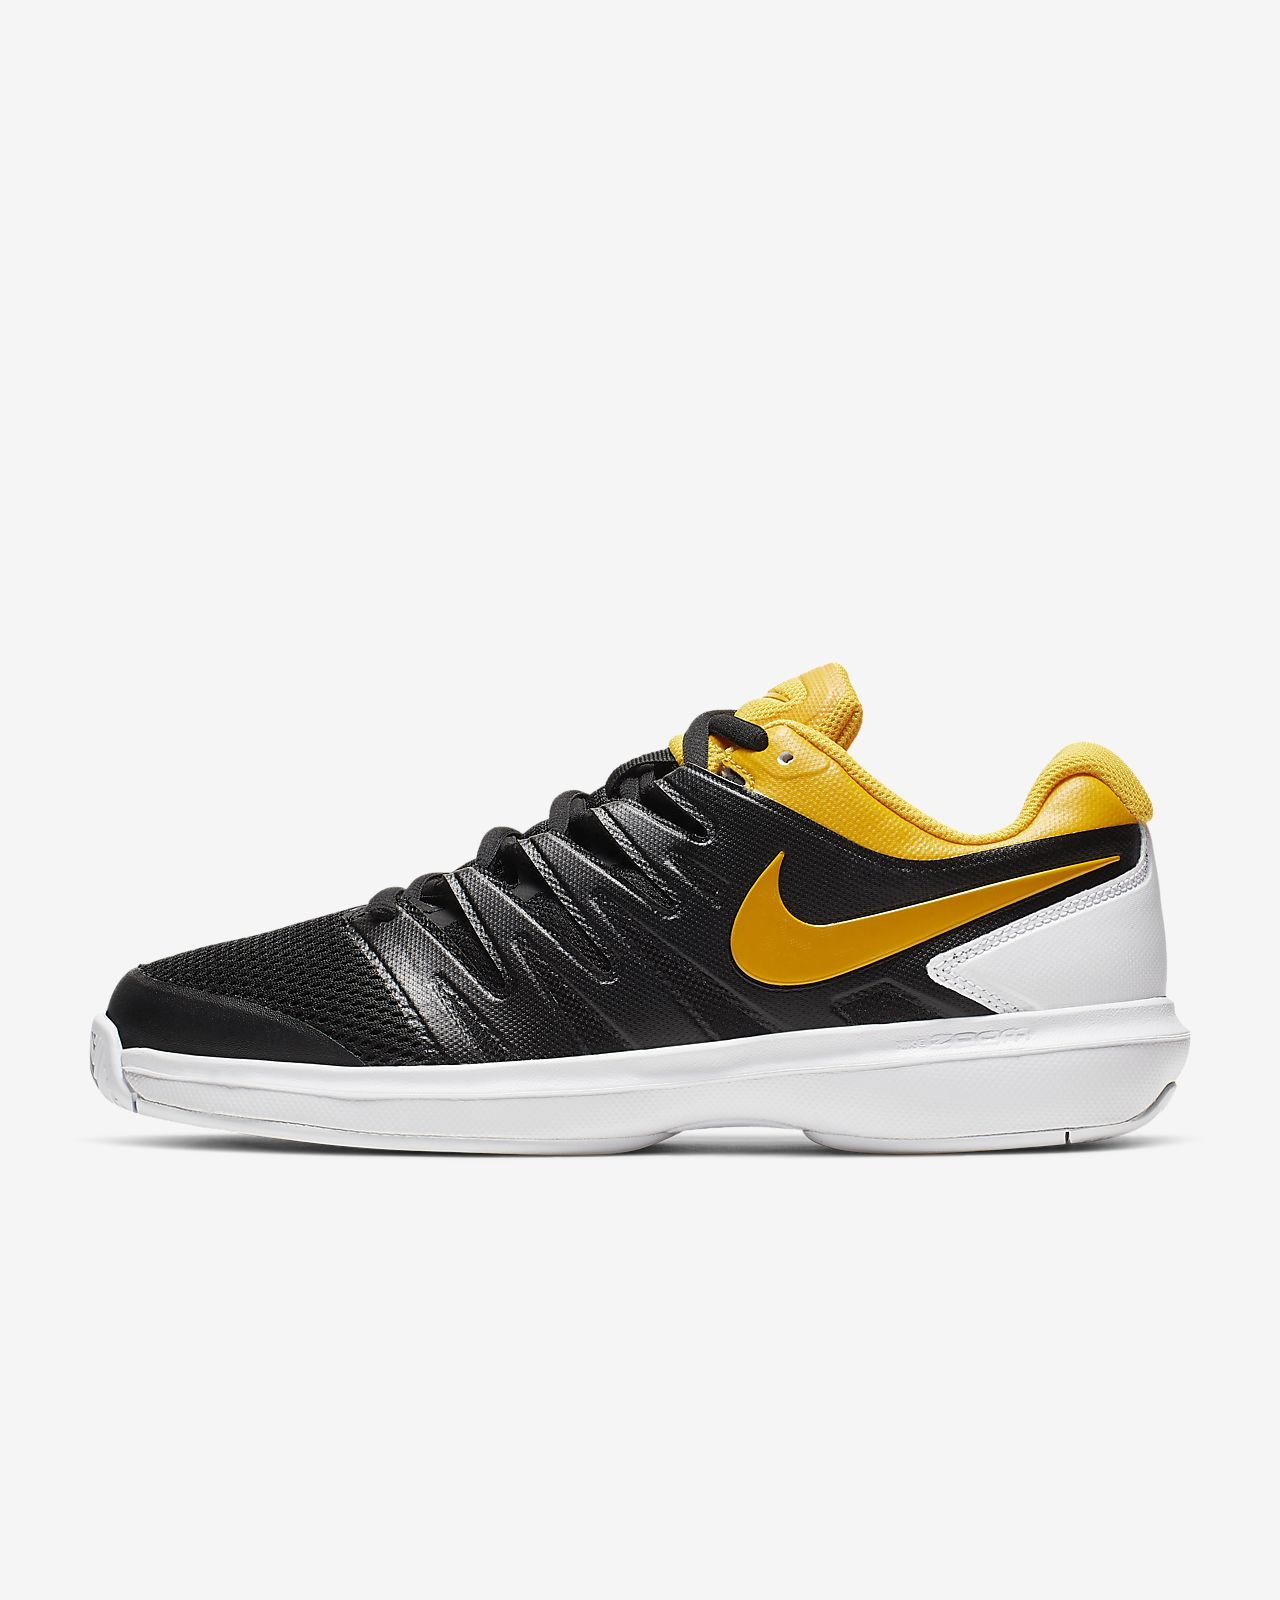 NikeCourt Air Zoom Prestige-hardcourt-tennissko til mænd